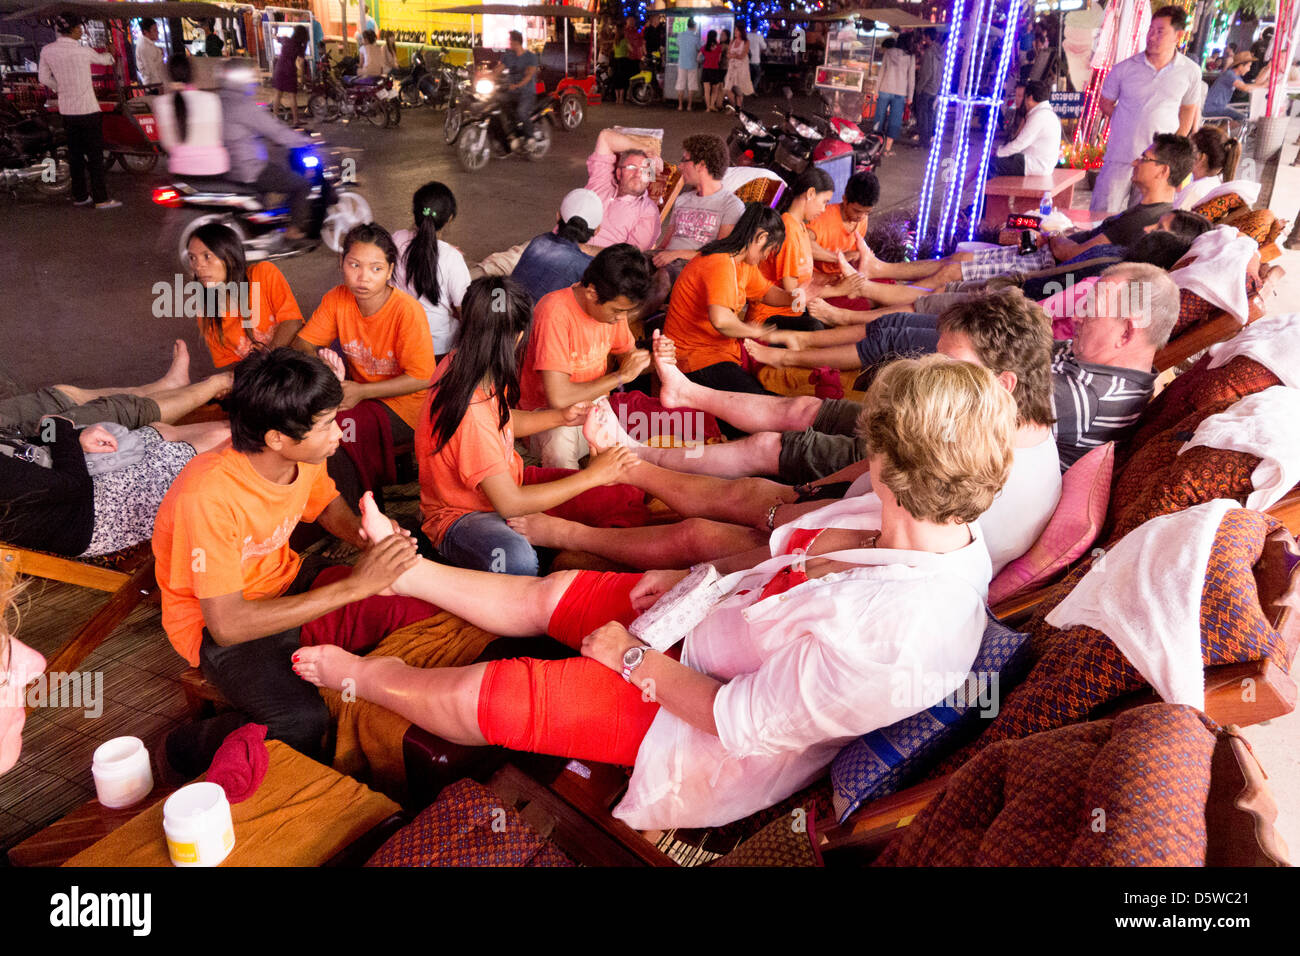 Masseurs and masseuses massage tourists on street at night in Pub Street nightlife district Siem Reap Cambodia - Stock Image